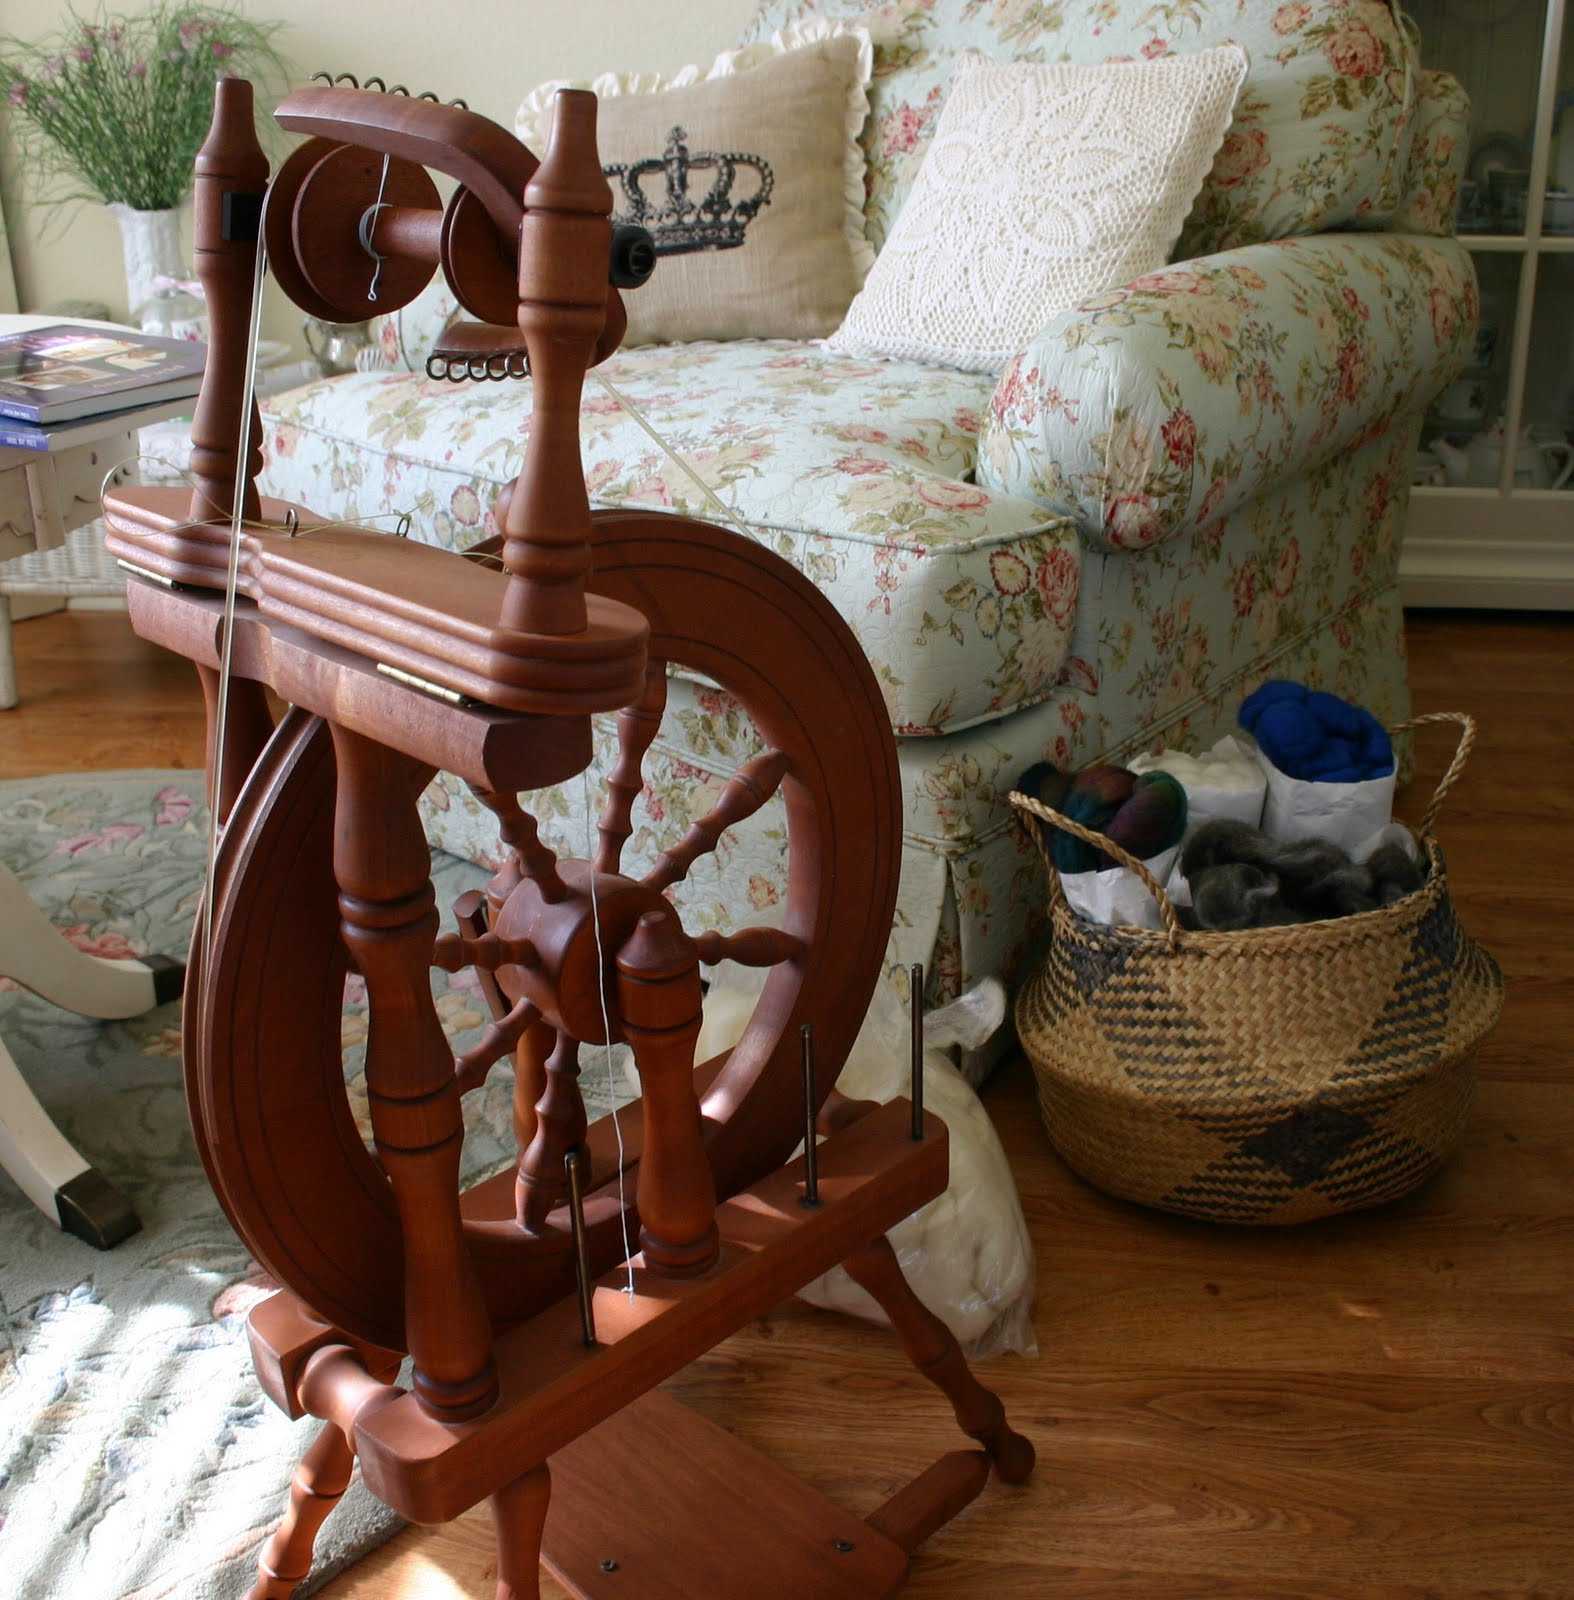 ashford classic spinning wheel how to. Black Bedroom Furniture Sets. Home Design Ideas